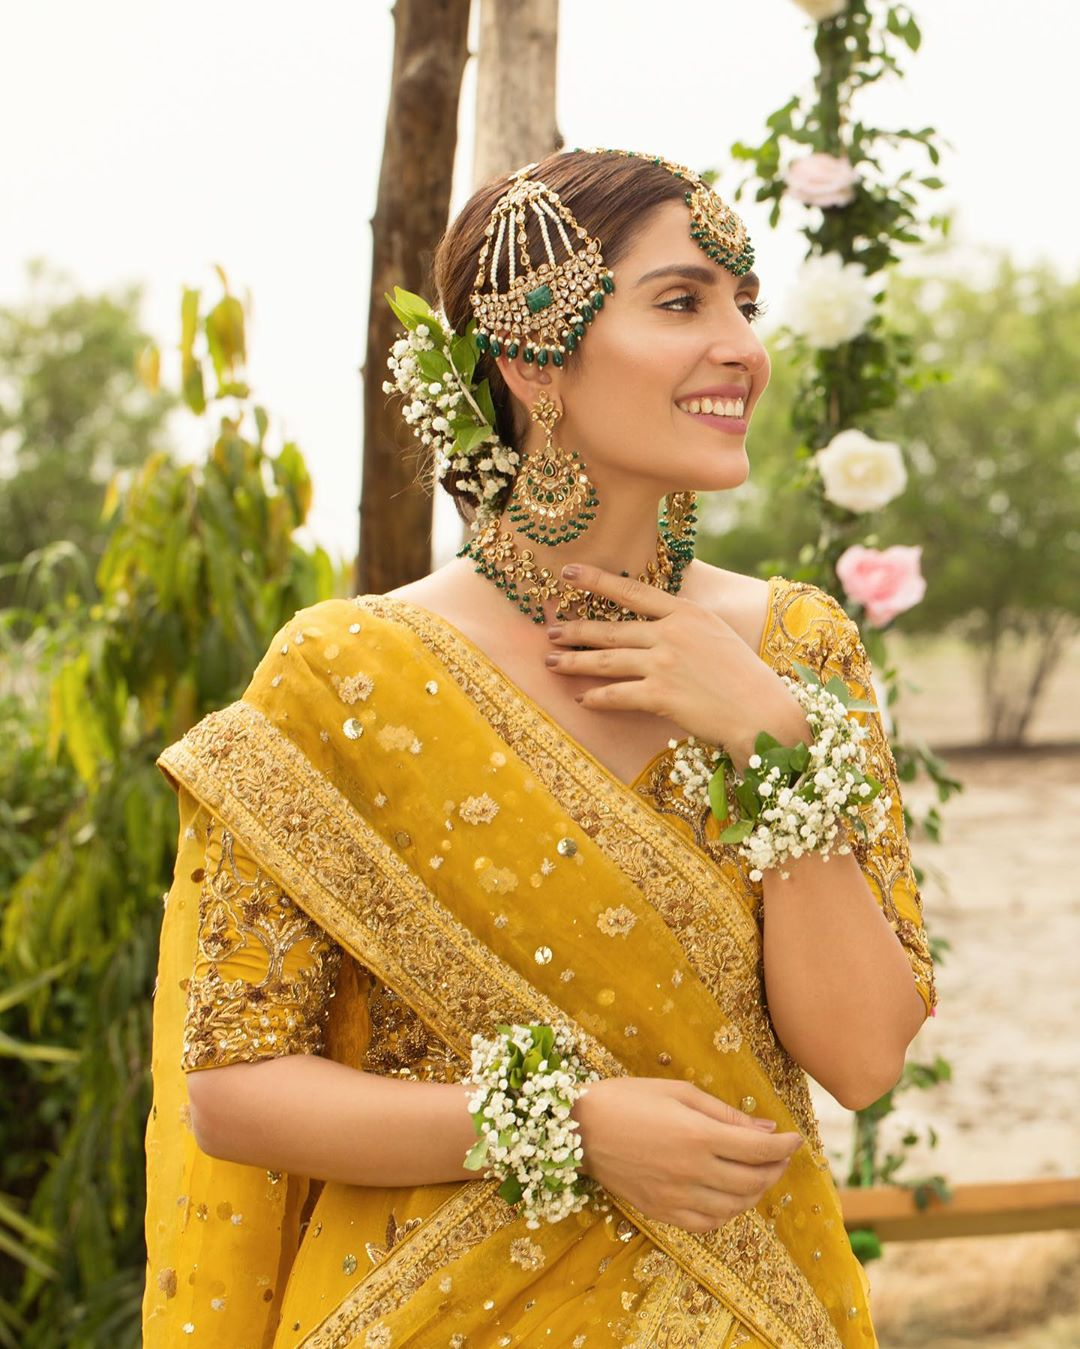 Ayeza Khan is Looking Gorgeous in Yellow Dress in Her Shoot